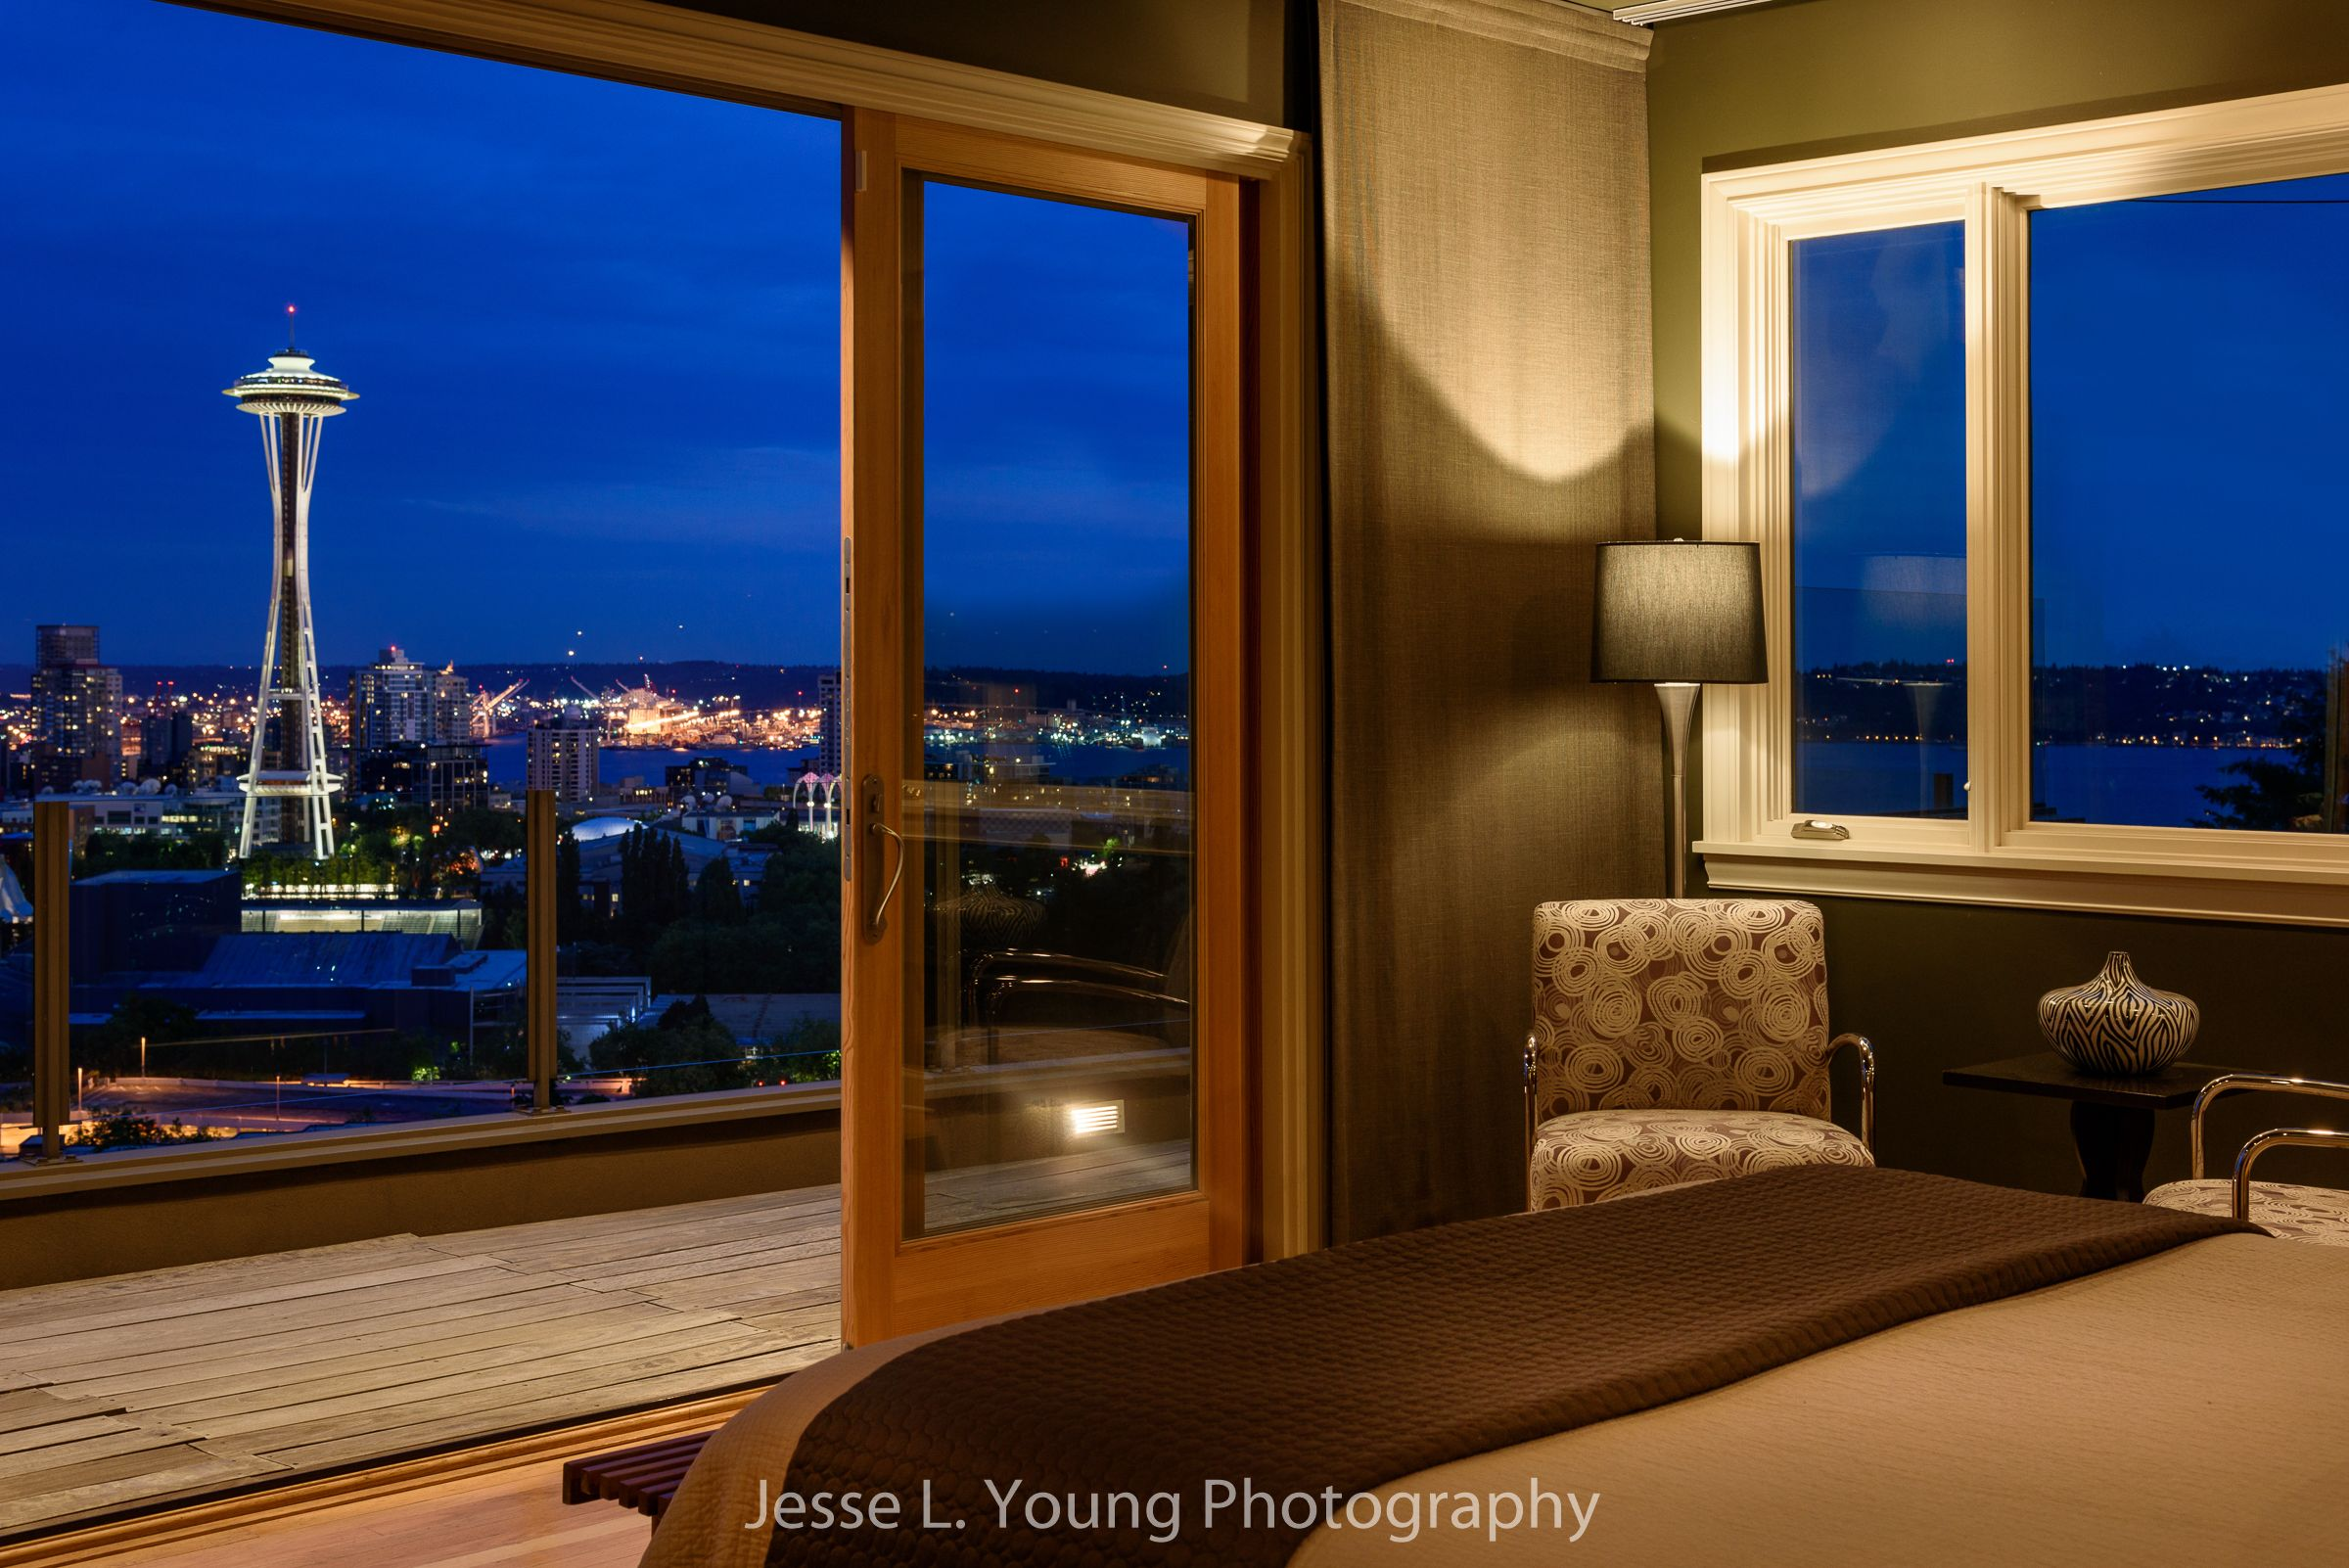 Space Needle Queen Anne home photographer